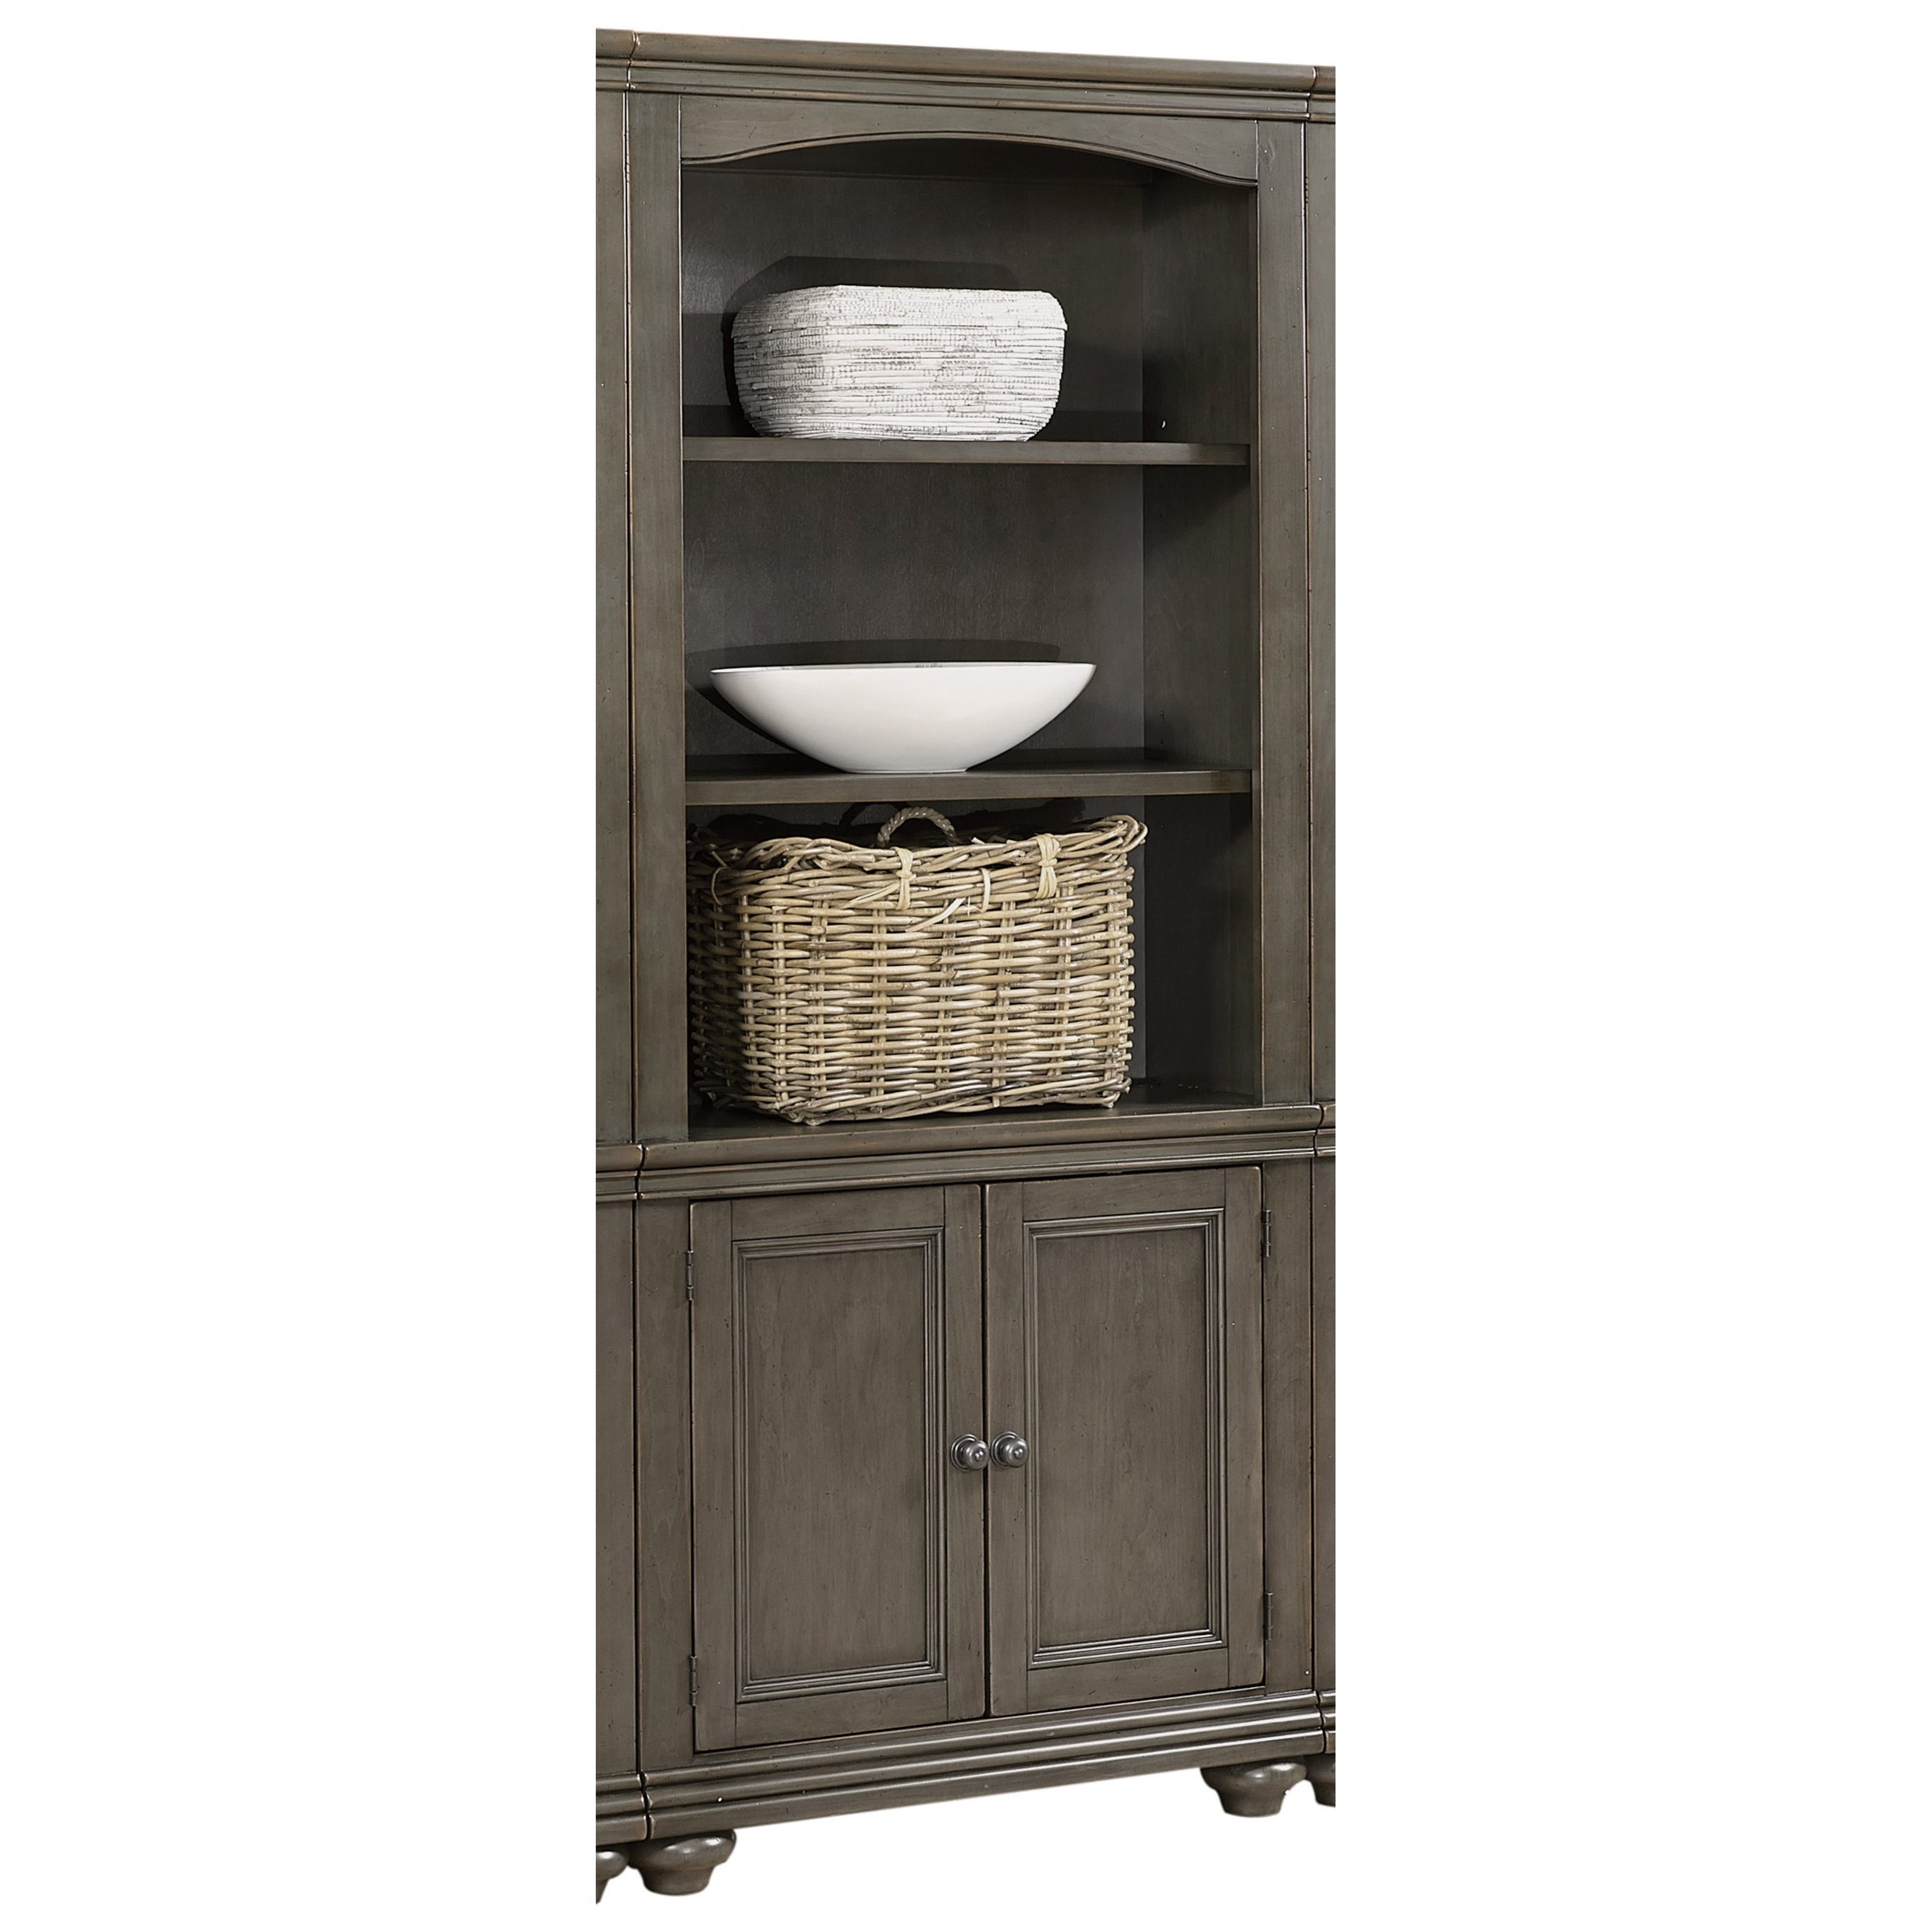 Aspenhome Oxford I07 332 Pep Door Bookcase With Adjustable Shelves